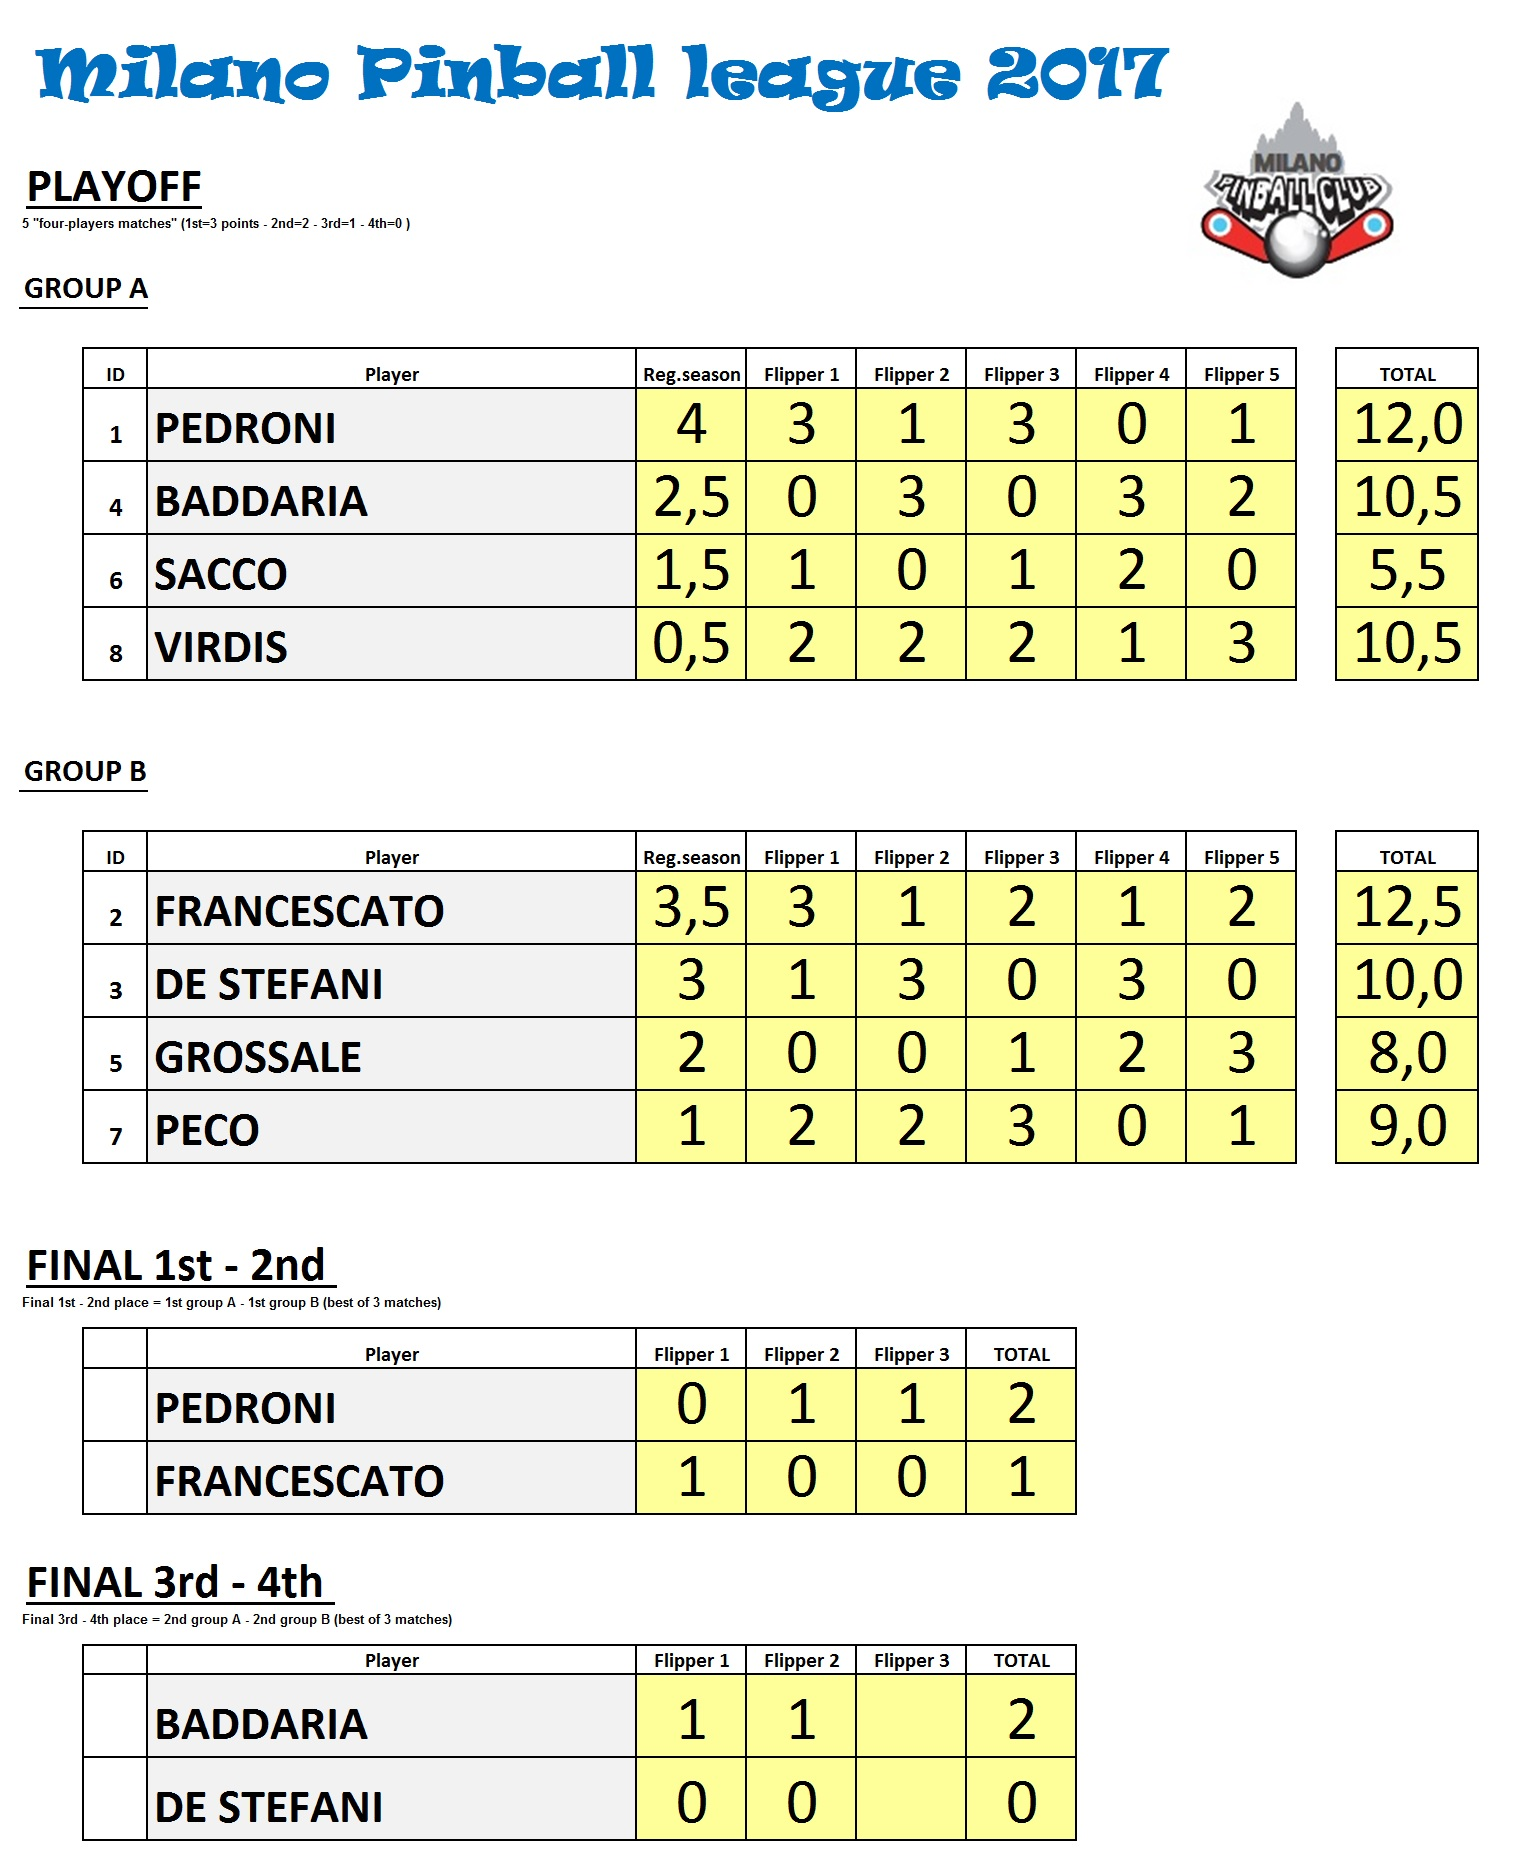 milanopinballleague2017-playoffresultsjpg